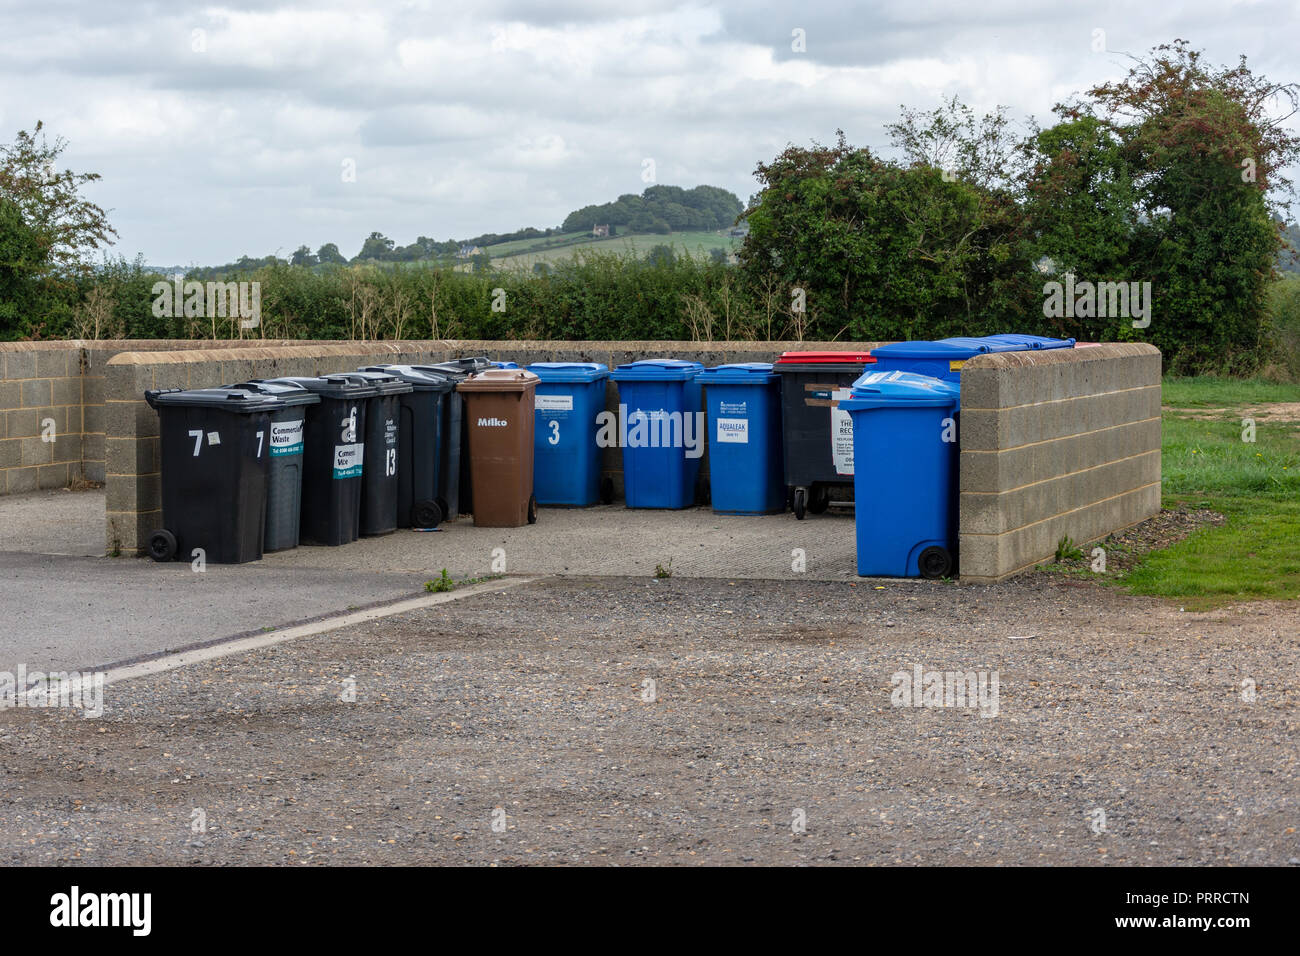 Small enclosure compound for rubbish bins and recycling bins separate from the units in a business park - Stock Image